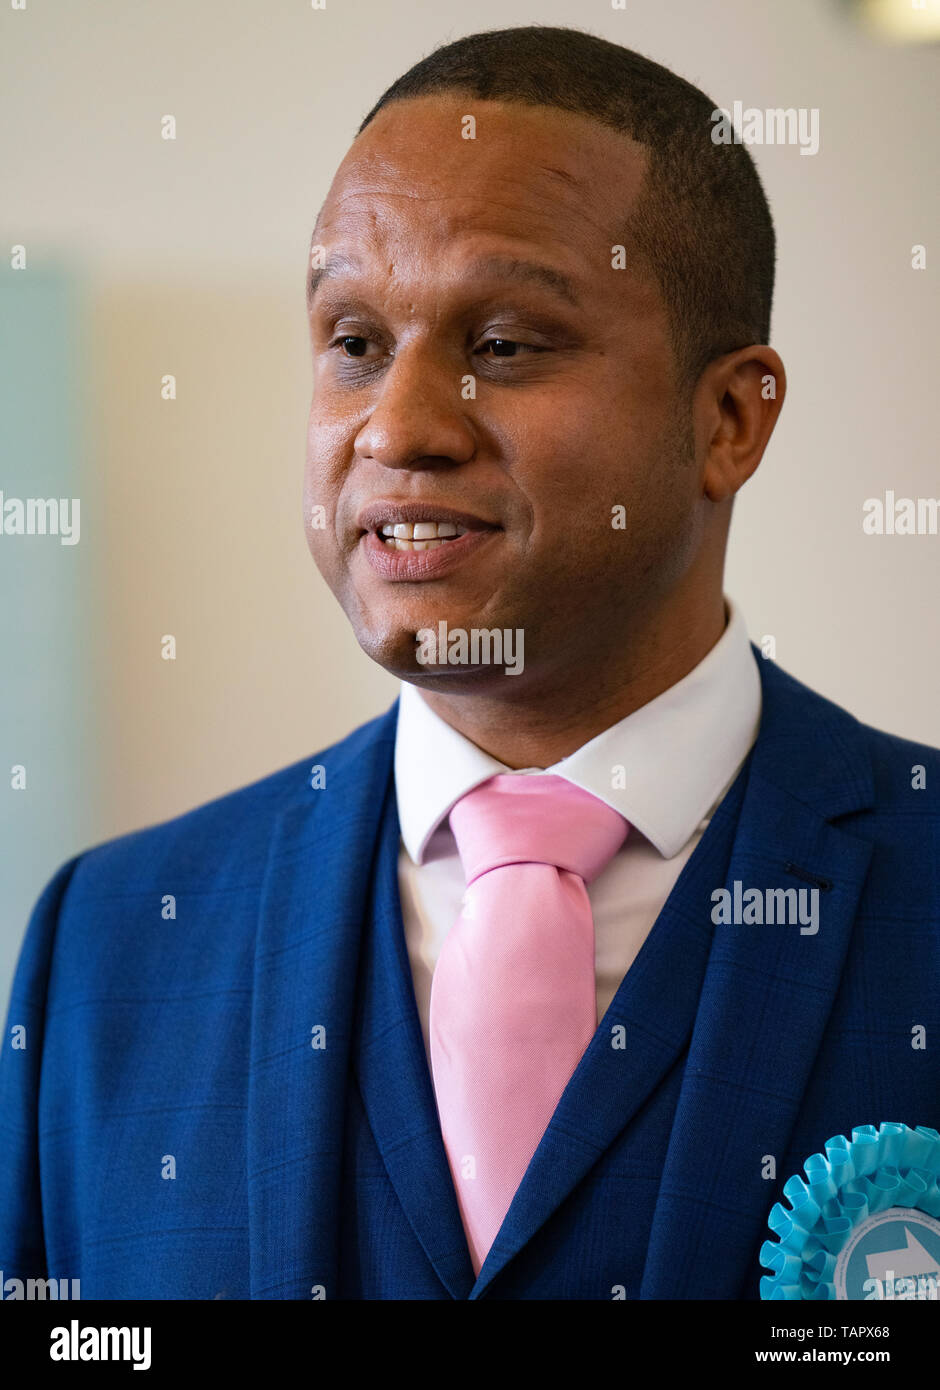 Edinburgh, Scotland, UK. 27th May, 2019. The six new Scottish MEPs are declared at the City Chambers in Edinburgh, Pictured Louis Stedman-Bruce from the Brexit Party Credit: Iain Masterton/Alamy Live News Stock Photo